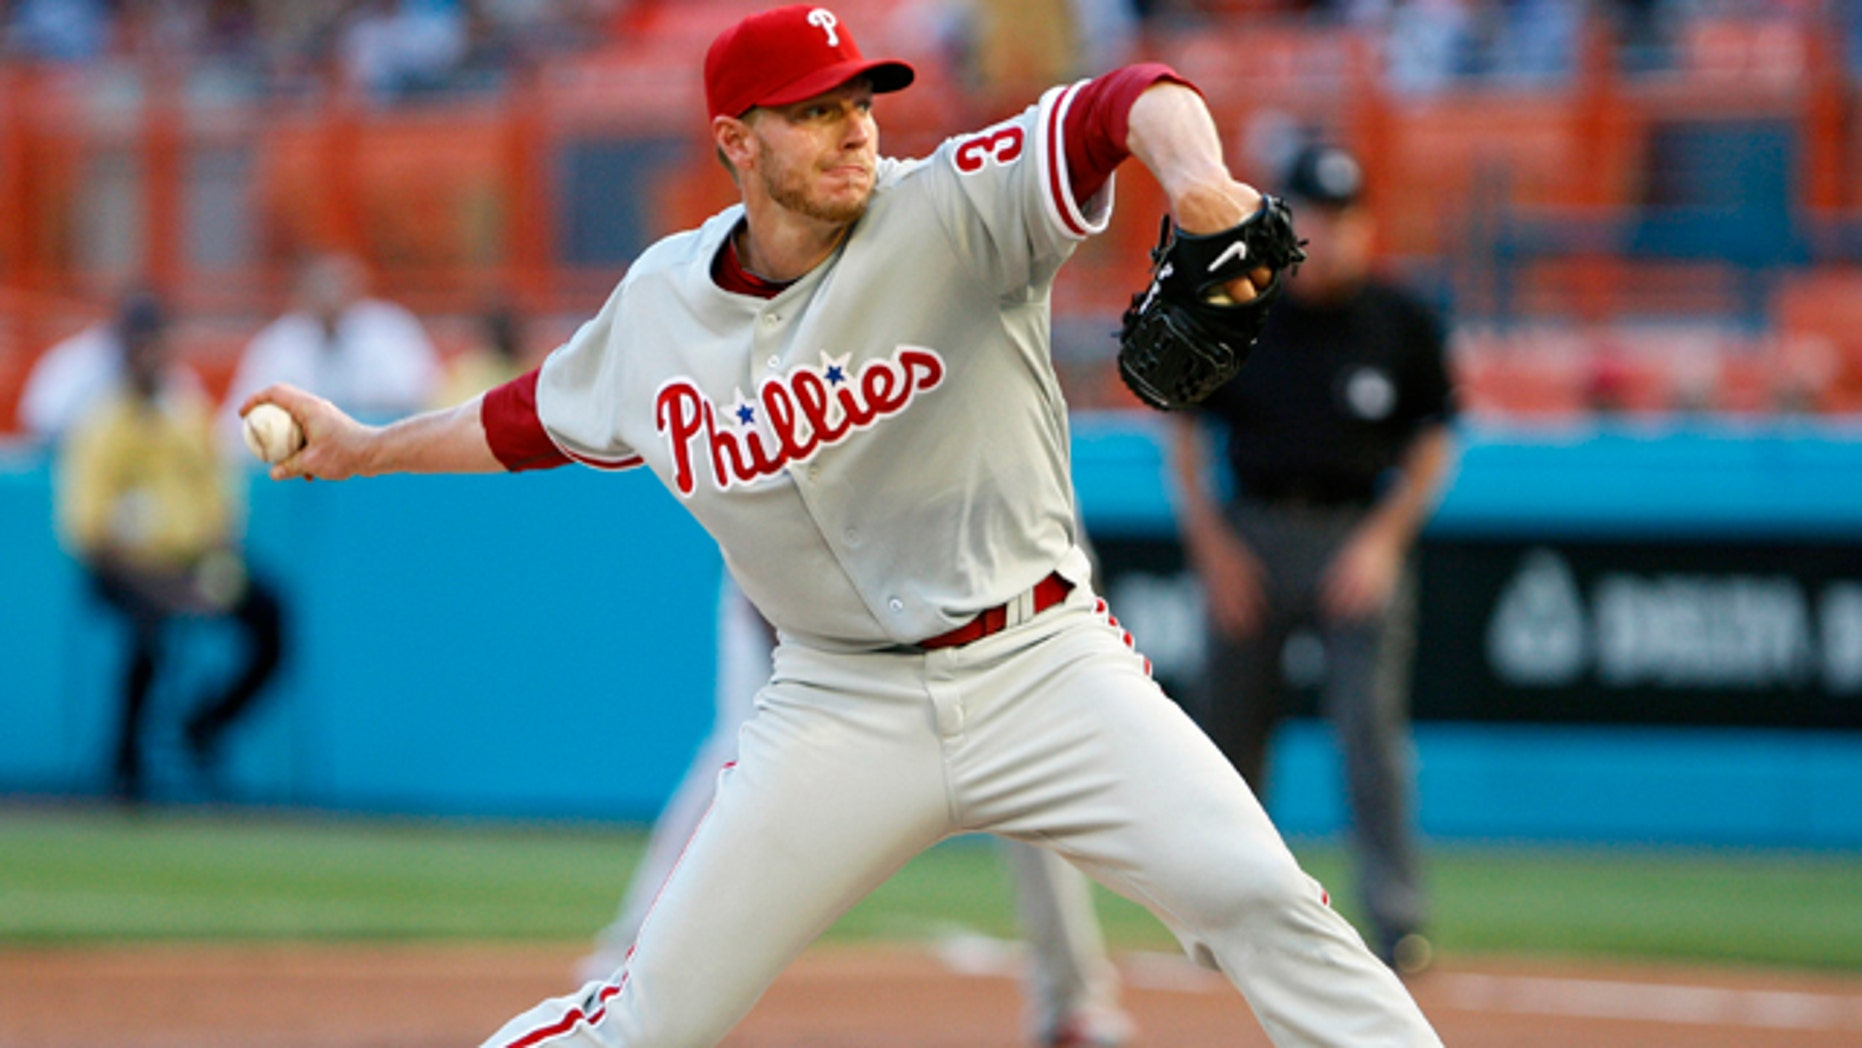 This May 29, 2010, file photo shows Philadelphia Phillies' Roy Halladay throwing a pitch during the first inning, enroute to a perfect game, against the Florida Marlins, in Miami.